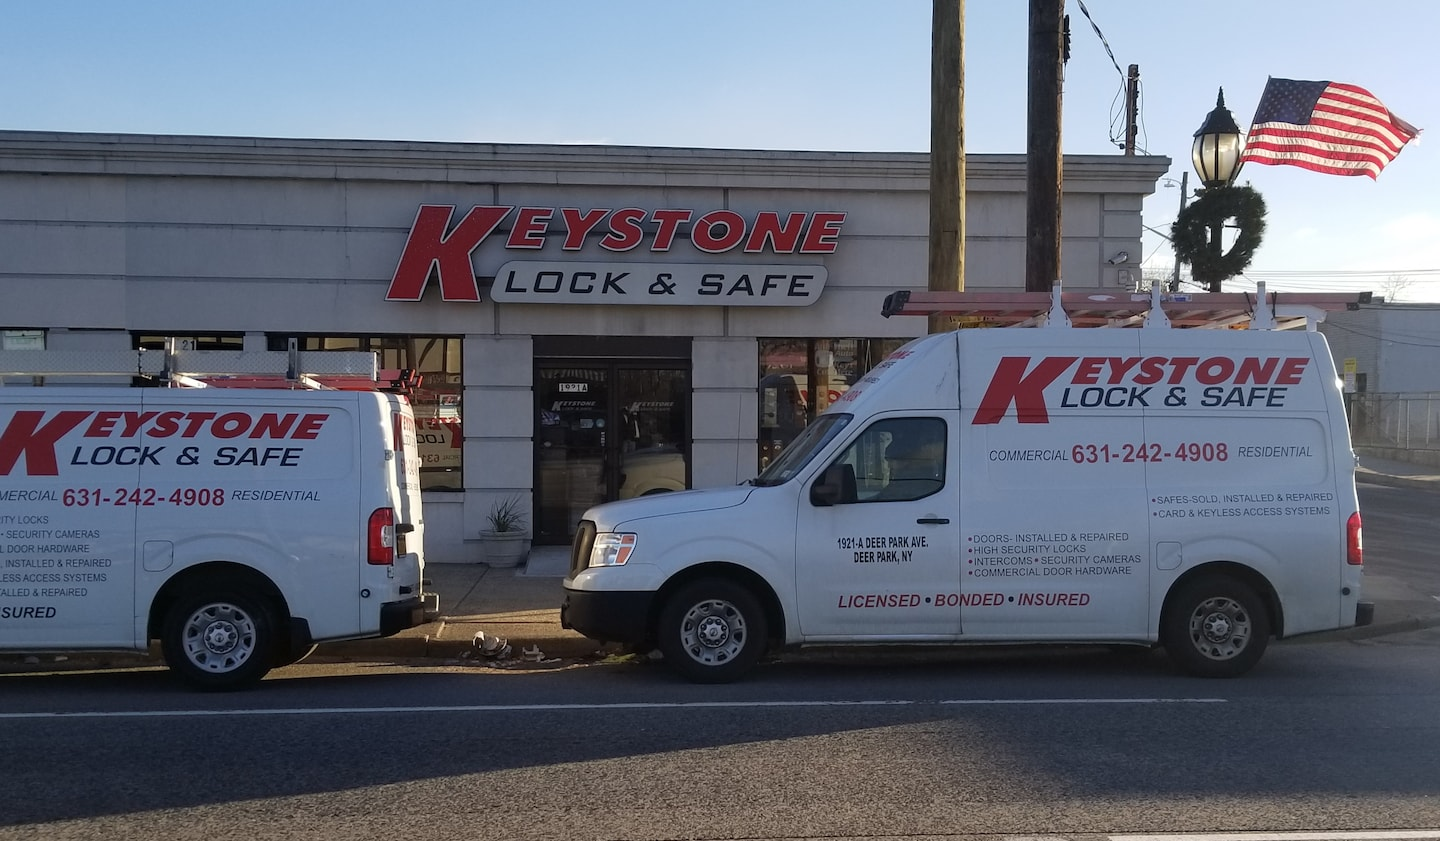 KEYSTONE LOCK & SAFE